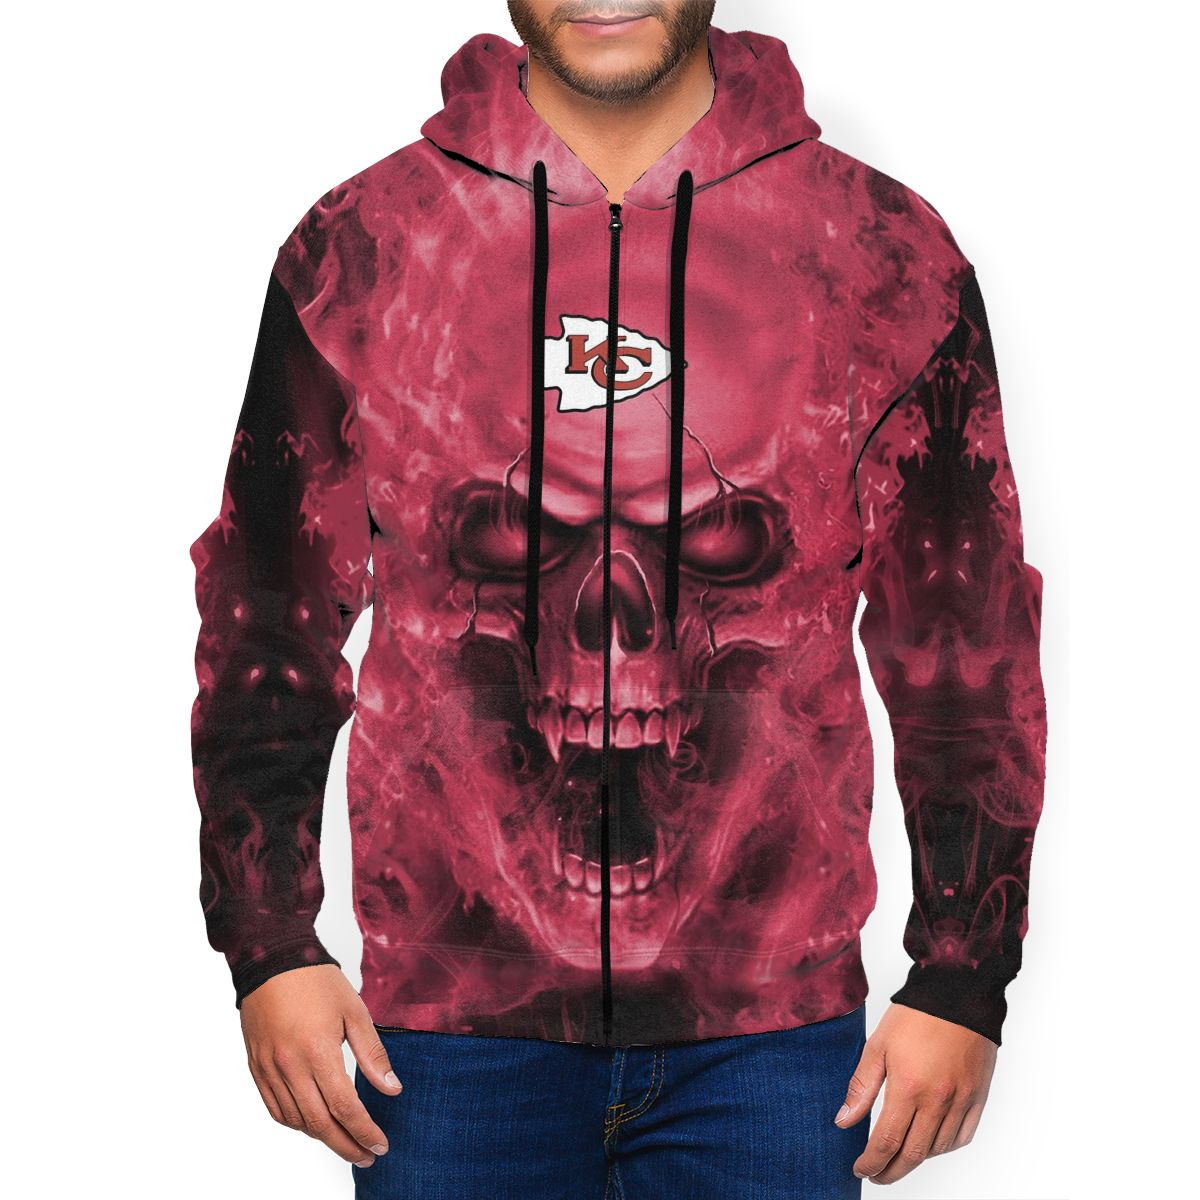 3D Skull Chiefs Men's Zip Hooded Sweatshirt